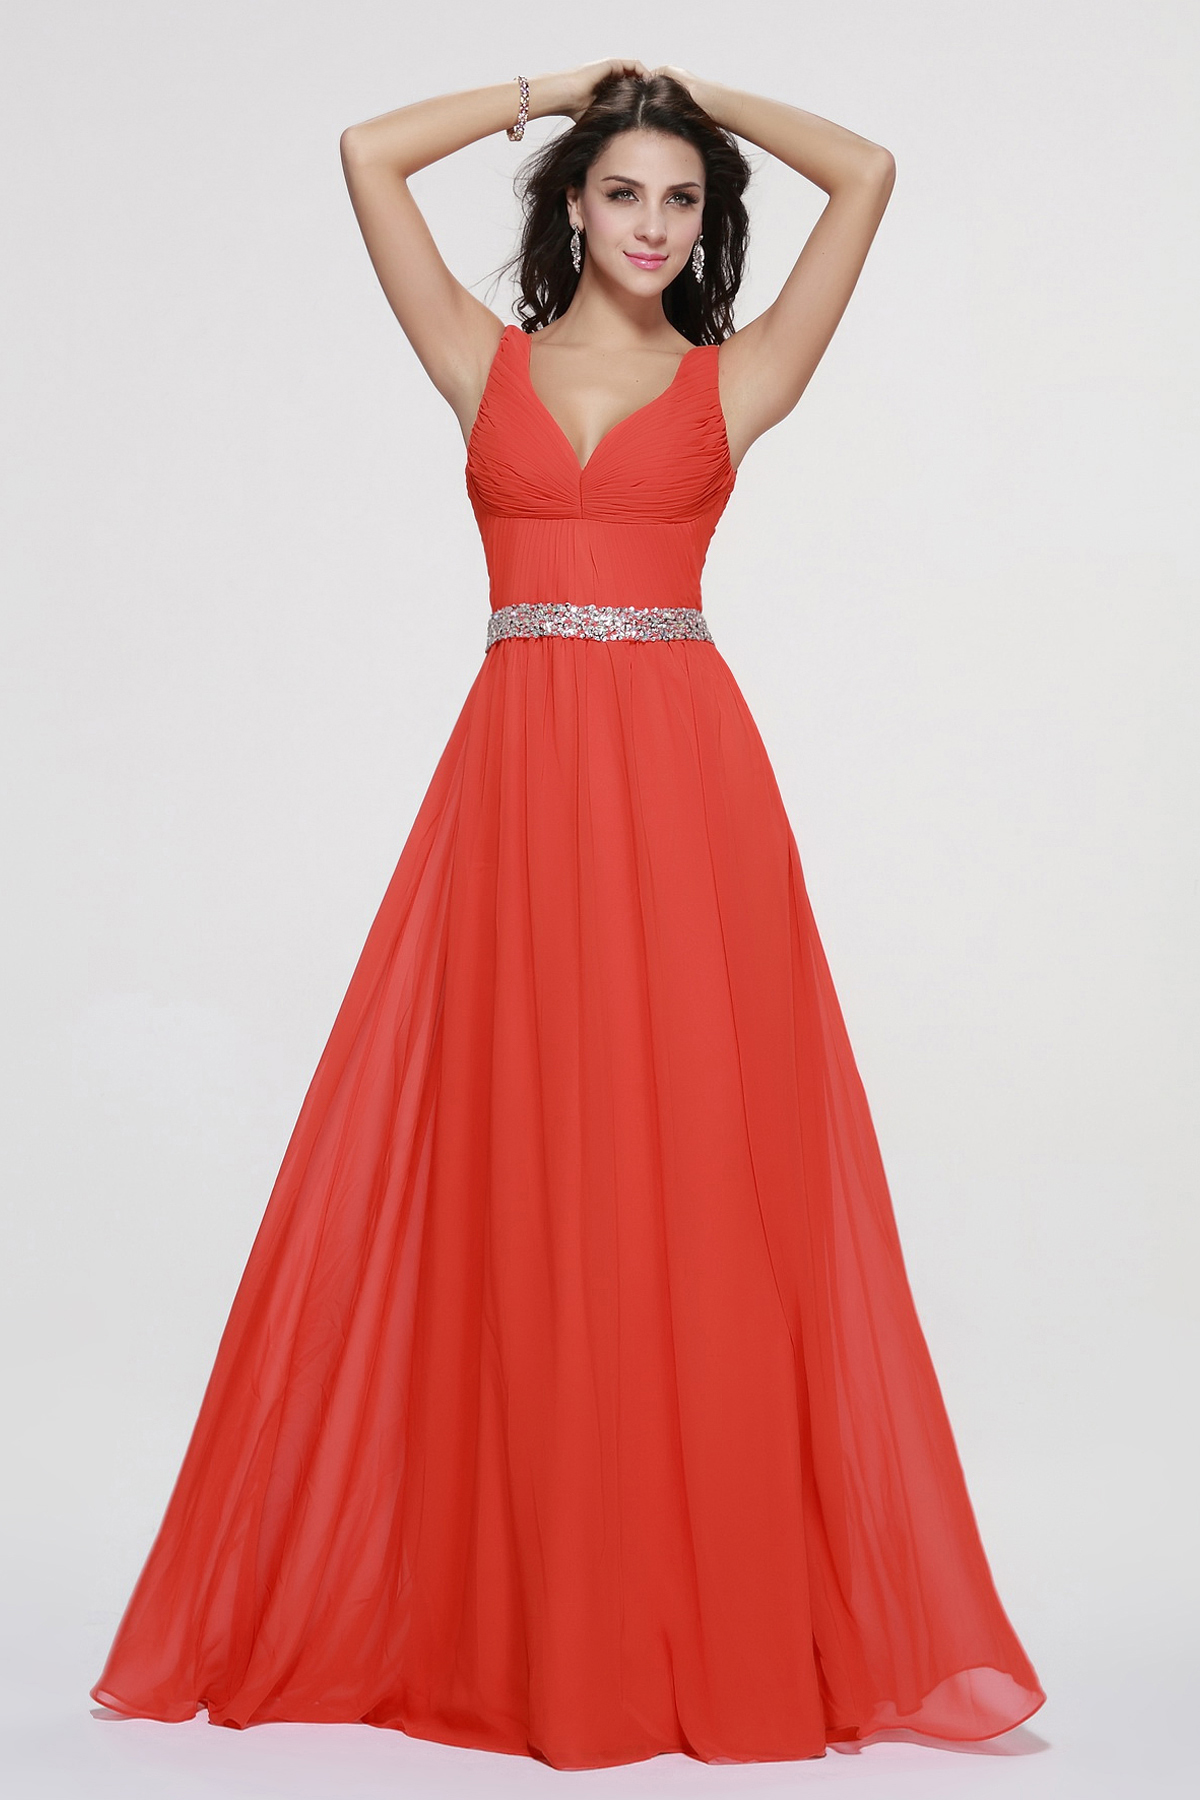 Sleeveless V Neck A-line Long Red Chiffon Prom Dress with Beading